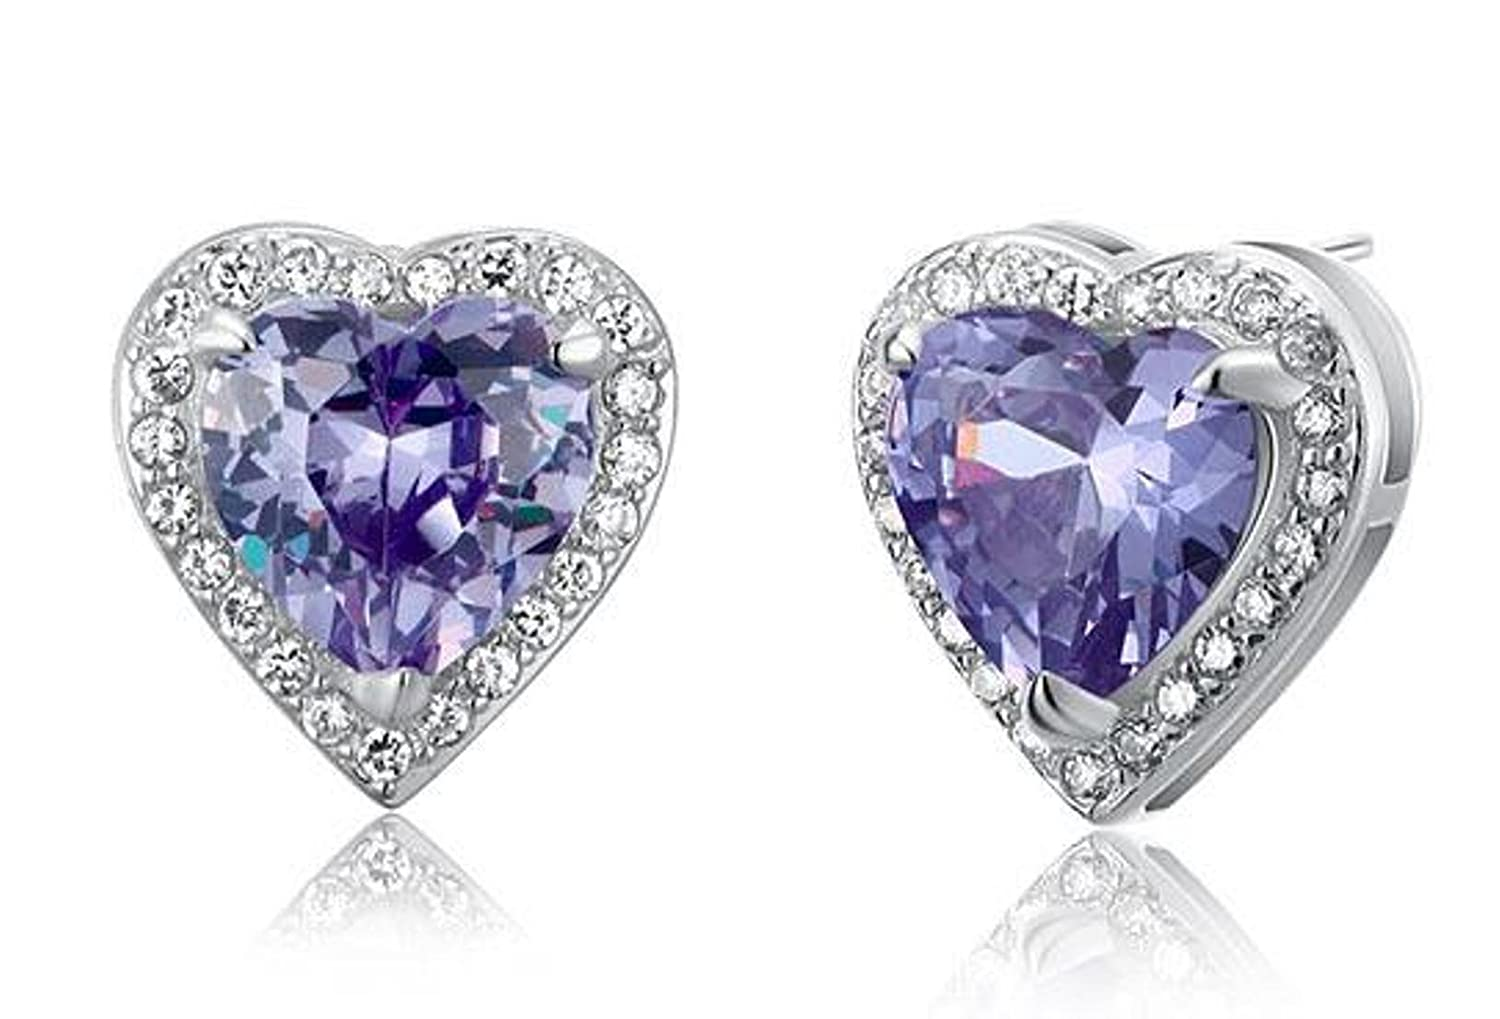 Exquisite Selebrity 3 Carat Created Purple Sapphire 925 Sterling Silver Heart Stud Earrings 8024